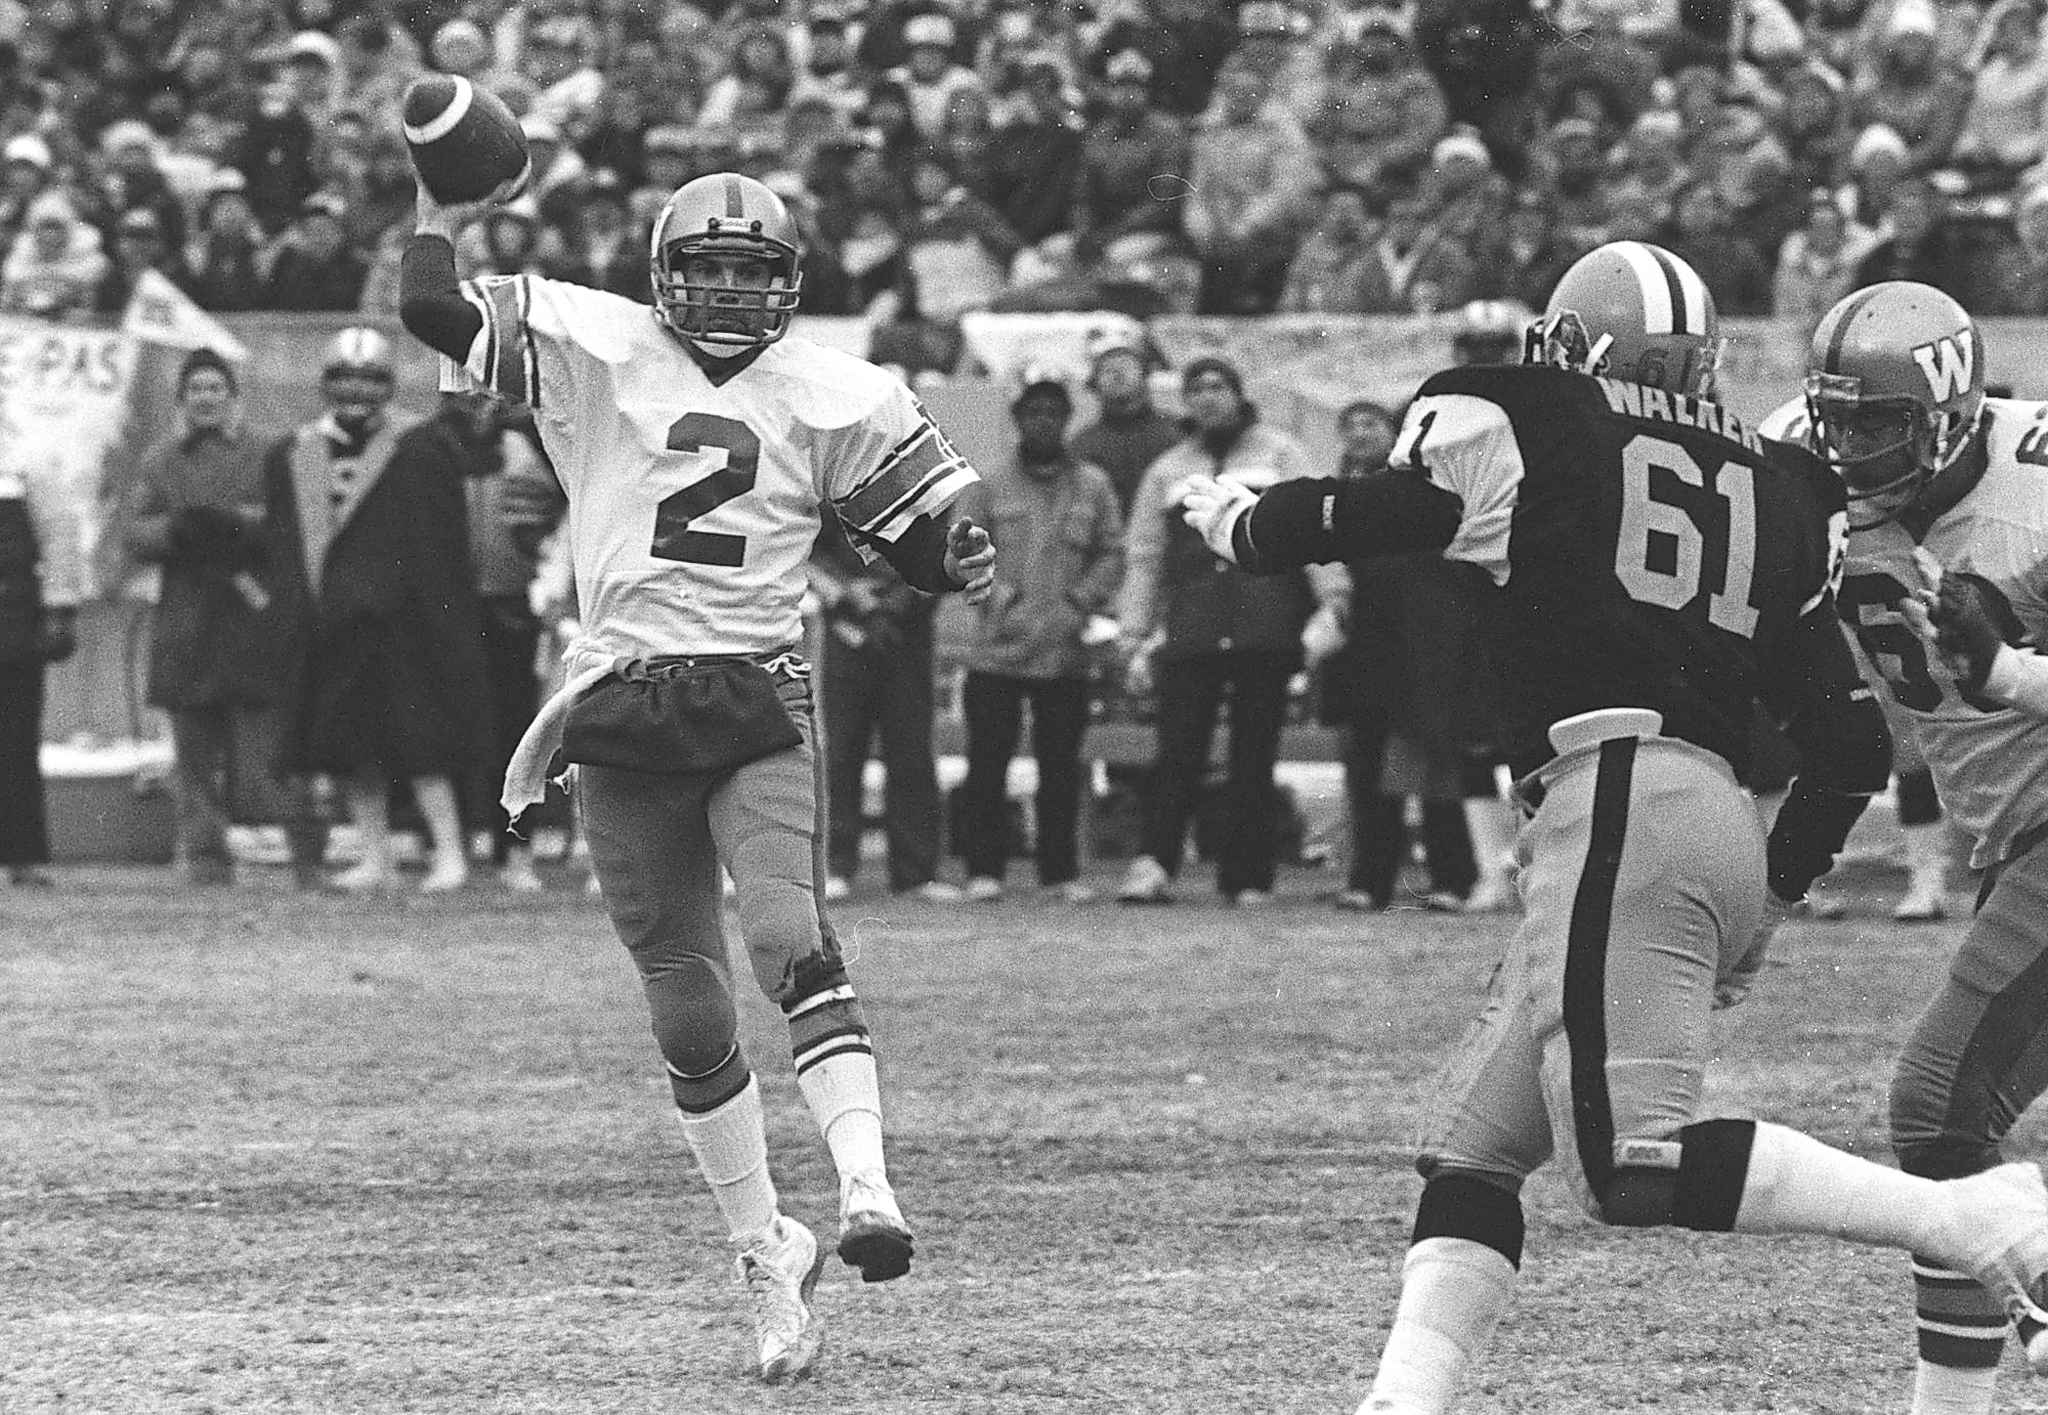 The Winnipeg Blue Bombers defeated the Hamilton Ti-Cats in the 1984 Grey Cup in Edmonton.